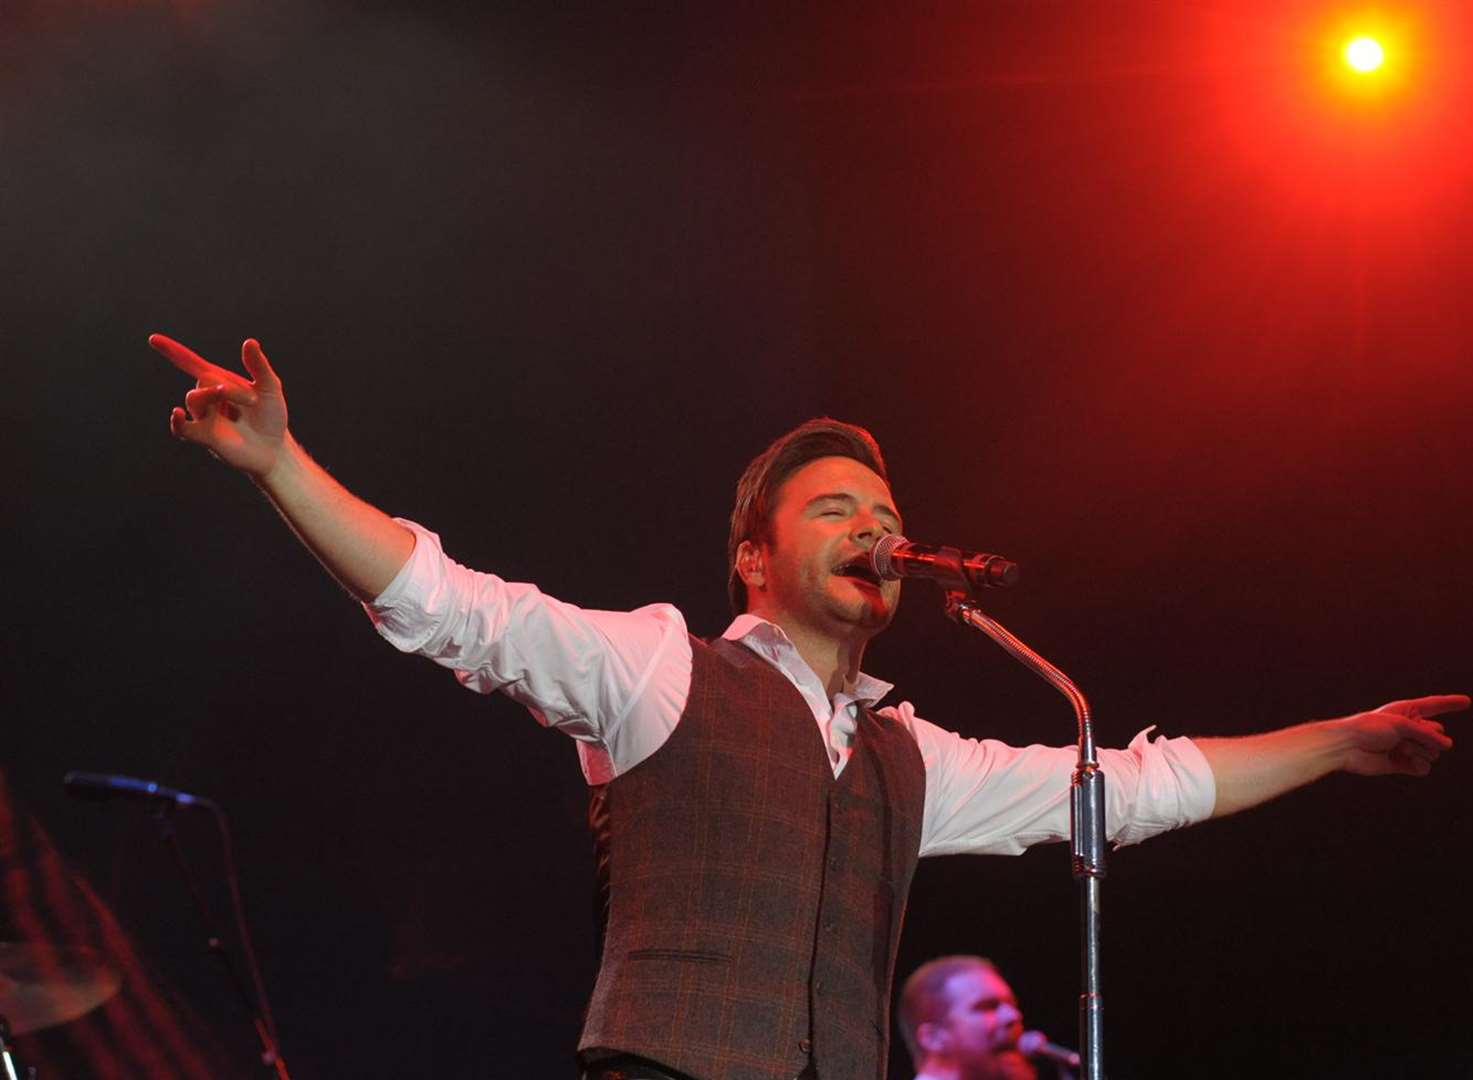 Westlife's Shane Filan wows Castle Concerts crowd